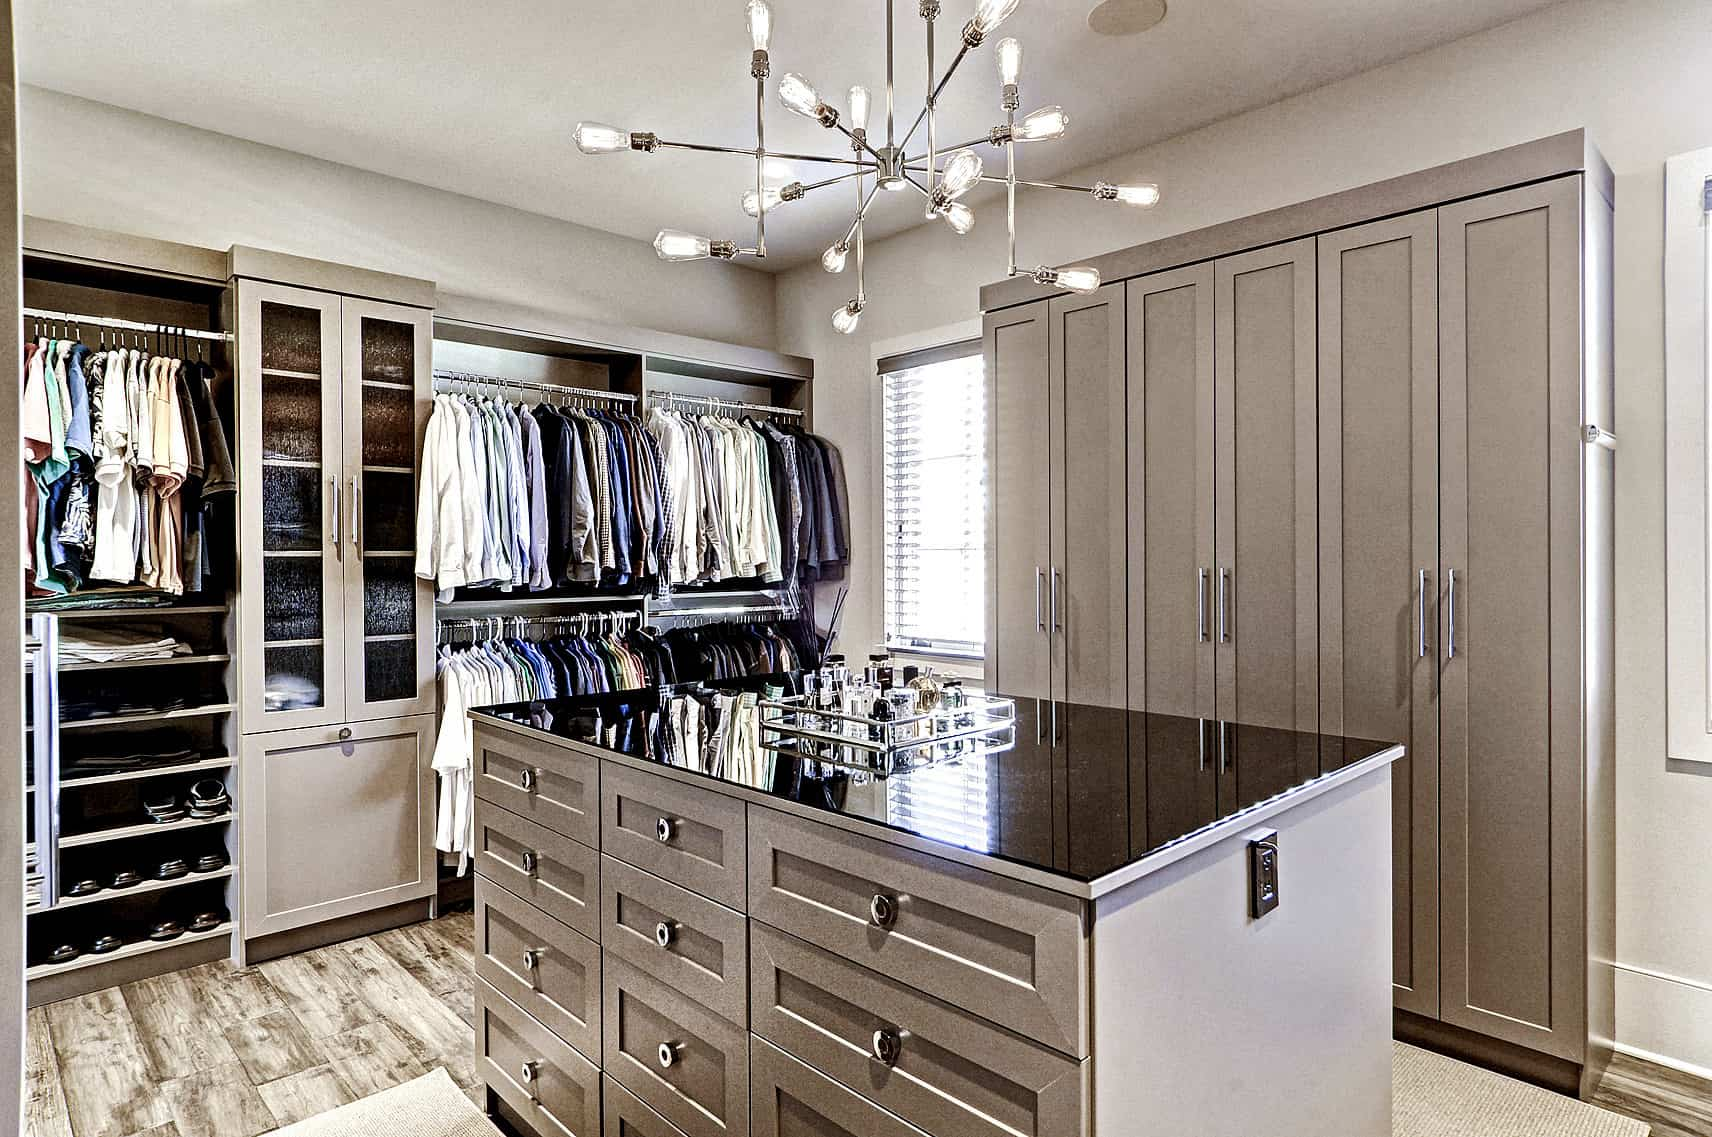 Custom luxury walk-in closet by Closet Works